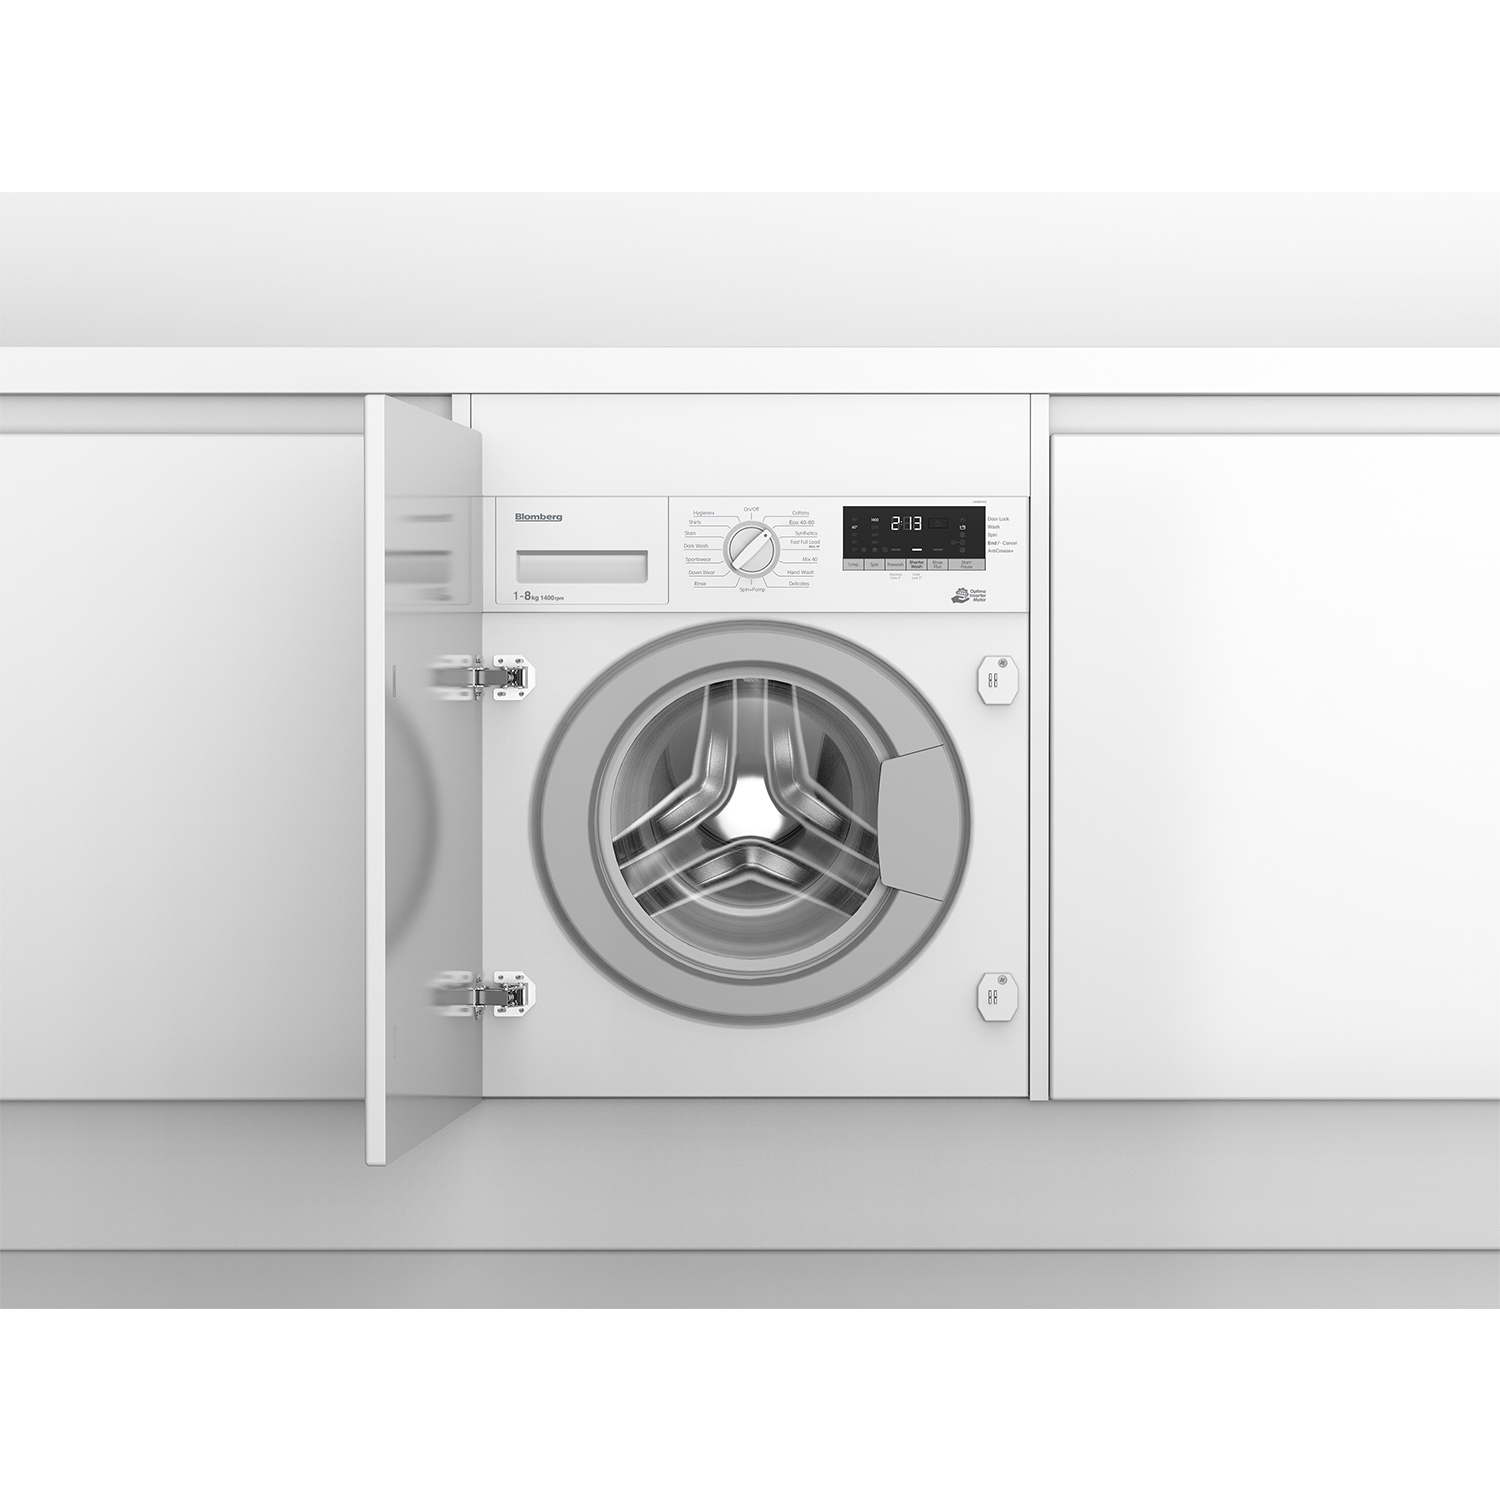 Blomberg LWI284410 8kg 1400 Spin Built In Washing Machine with Fast Full Load - White - 0